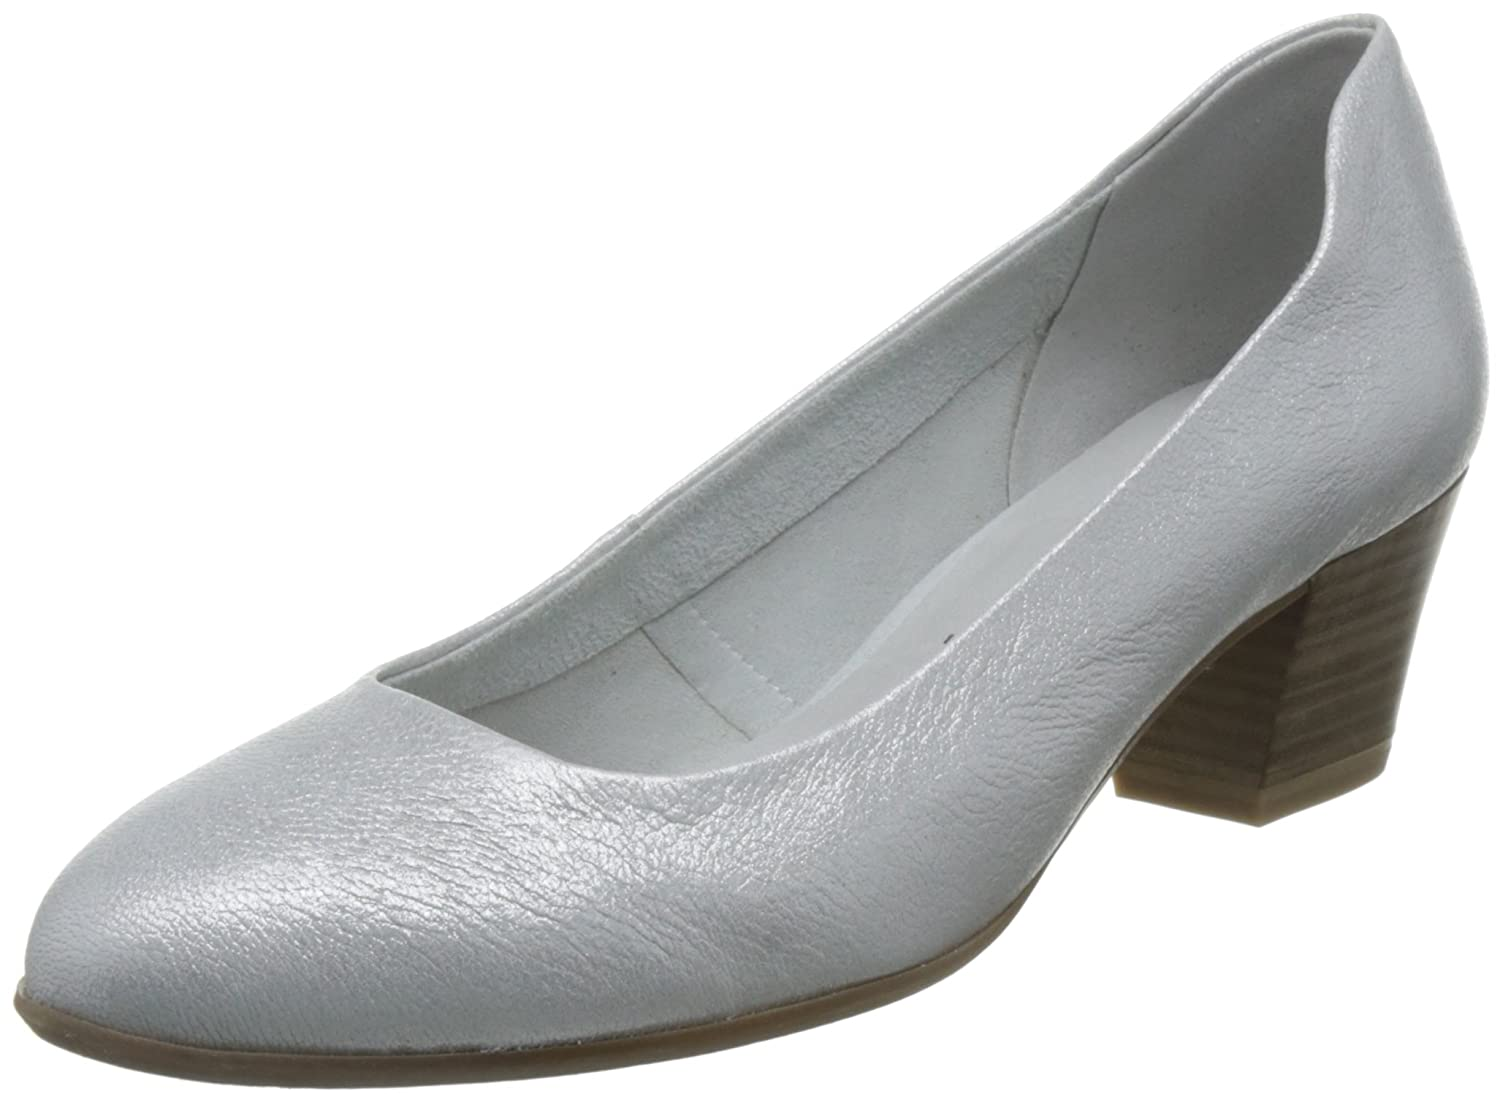 Silber Tamaris Damen 22410 Pumps